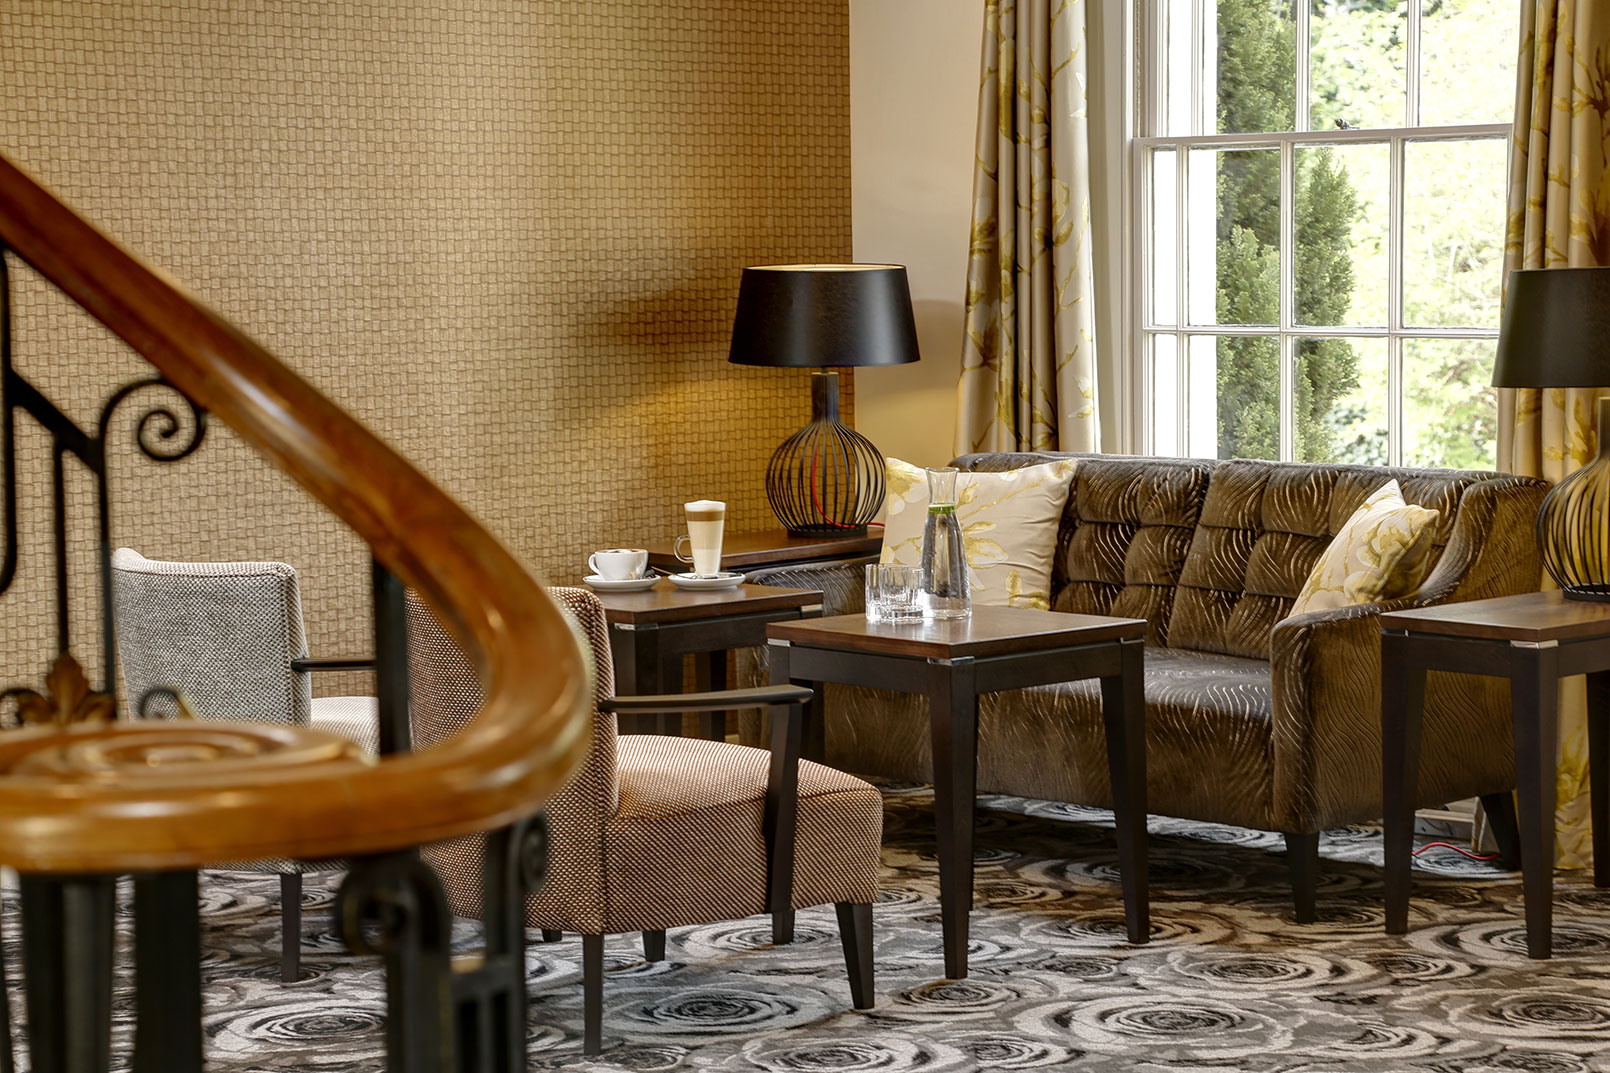 Best Western Banbury House Hotel Network Topology Diagram Guesthouse Wifi Grounds And 38 83665